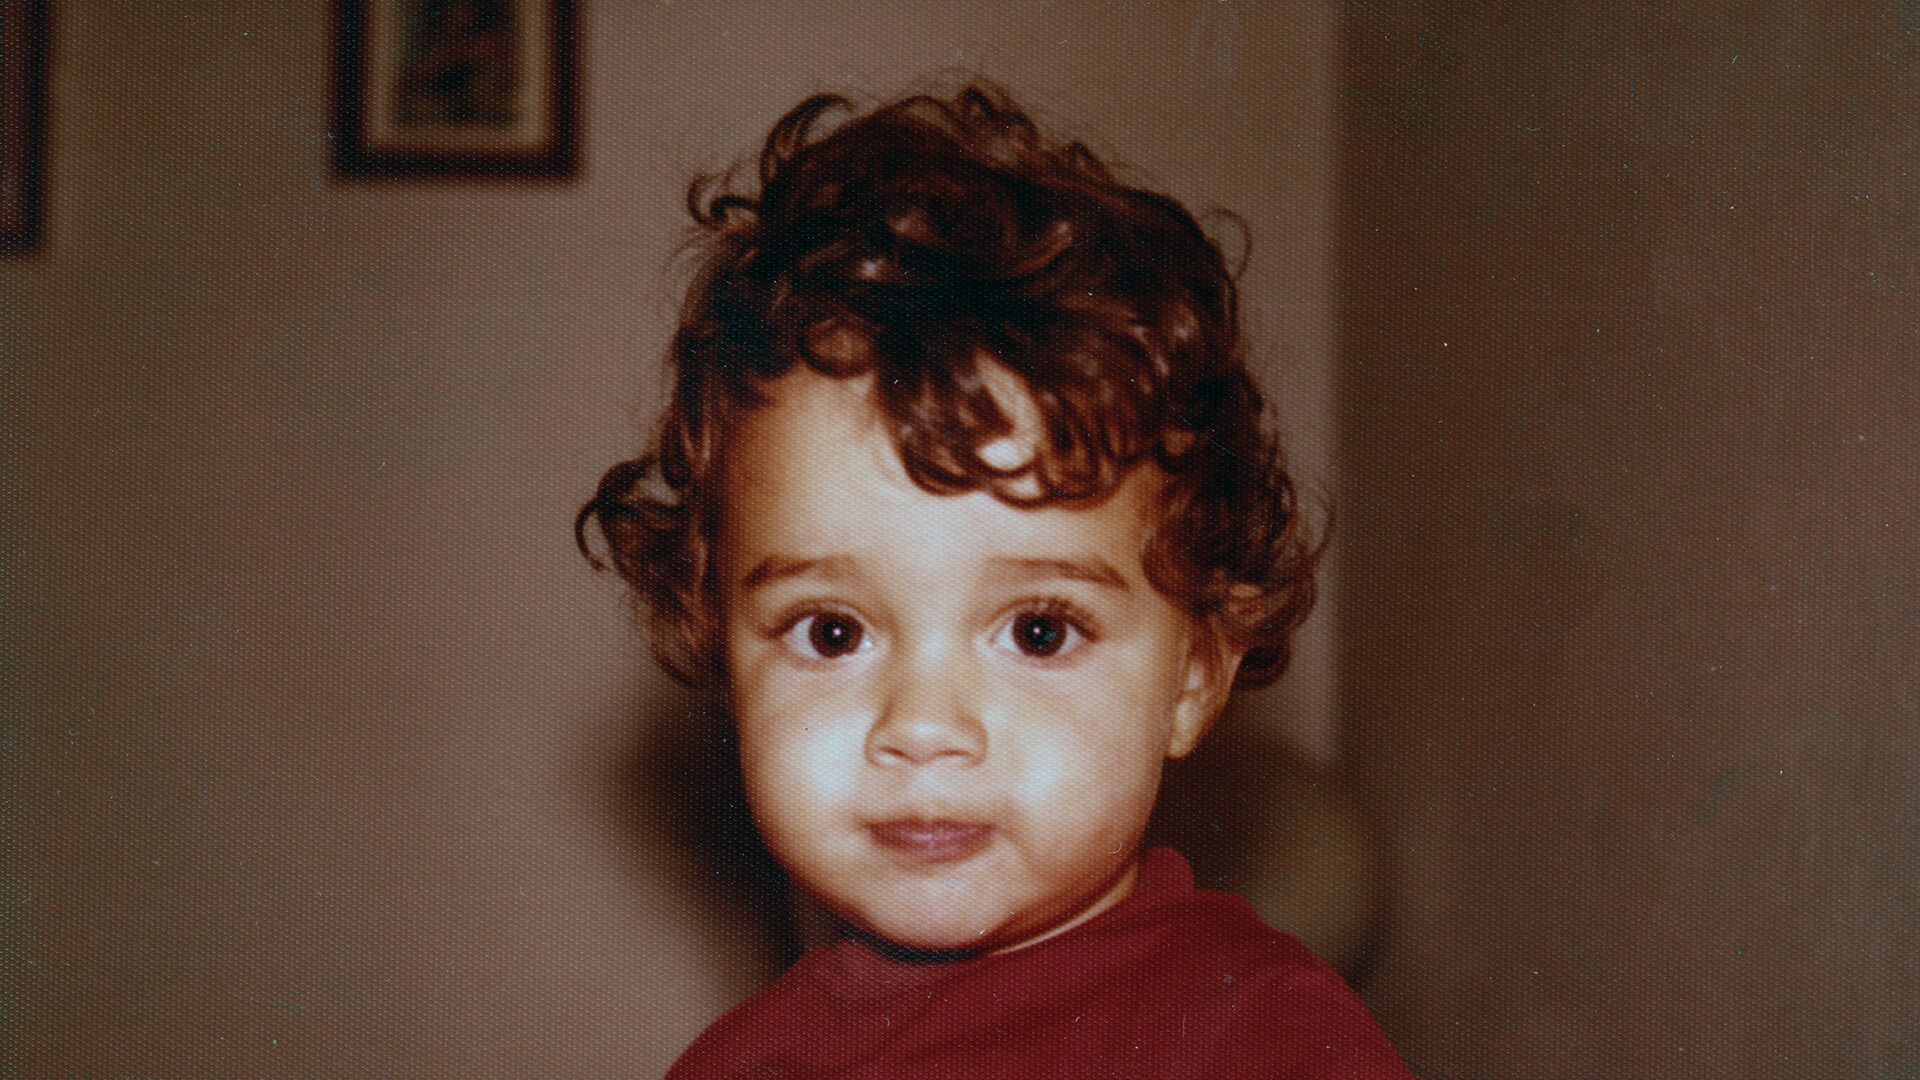 Image of Panos Kouvelis kid portrait front facing with red shirt Web.